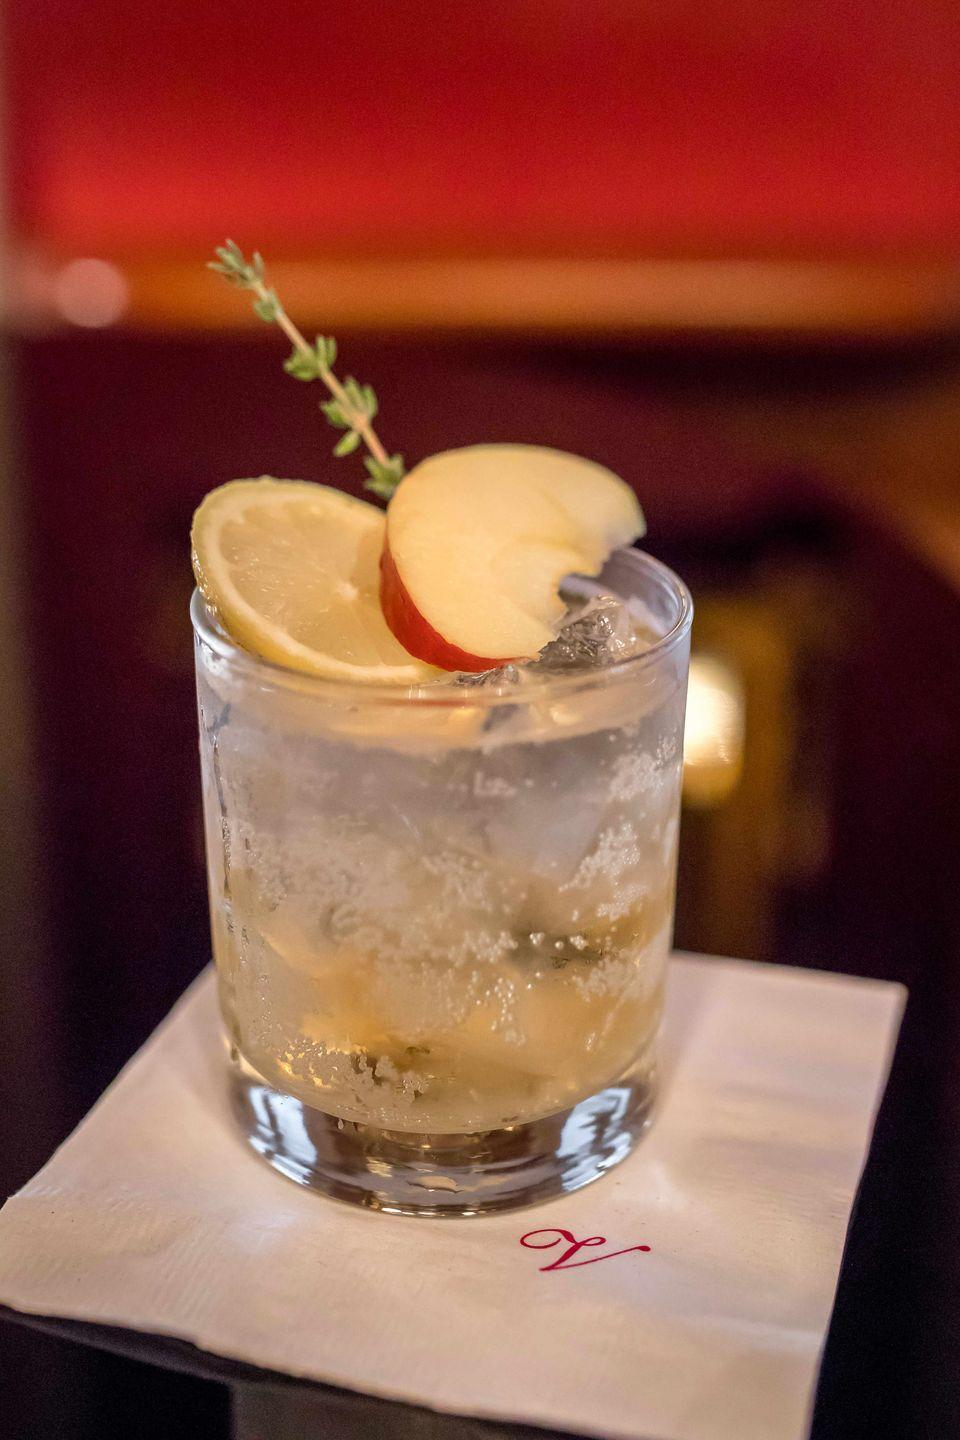 """<p><strong><strong>Ingredients</strong></strong></p><p>2 oz Alibi Gin<br>.25 oz lemon juice<br>Agave nectar, to taste<br>Sparkling apple cider<br>Garnished with thyme and apple</p><p><strong><strong>Instructions</strong></strong></p><p>Pour gin in shaker, add lemon juice and agave nectar, shake, and then pour into a high ball glass and top with sparkling cider. Garnish with fresh thyme and an apple slice.</p><p><em>From <a href=""""http://www.caperesorts.com/restaurants/capemay/ebbittroom"""" rel=""""nofollow noopener"""" target=""""_blank"""" data-ylk=""""slk:The Ebbitt Room"""" class=""""link rapid-noclick-resp"""">The Ebbitt Room</a> at the <a href=""""http://www.caperesorts.com/hotels/capemay/virginiahotel/"""" rel=""""nofollow noopener"""" target=""""_blank"""" data-ylk=""""slk:Virginia Hotel"""" class=""""link rapid-noclick-resp"""">Virginia Hotel</a> in Cape May, NJ</em></p><p><strong>More</strong>: <a href=""""https://www.townandcountrymag.com/leisure/drinks/g28568631/apple-cider-cocktails/"""" rel=""""nofollow noopener"""" target=""""_blank"""" data-ylk=""""slk:The 16 Tastiest Apple Cider Cocktails to Make This Fall"""" class=""""link rapid-noclick-resp"""">The 16 Tastiest Apple Cider Cocktails to Make This Fall</a></p>"""